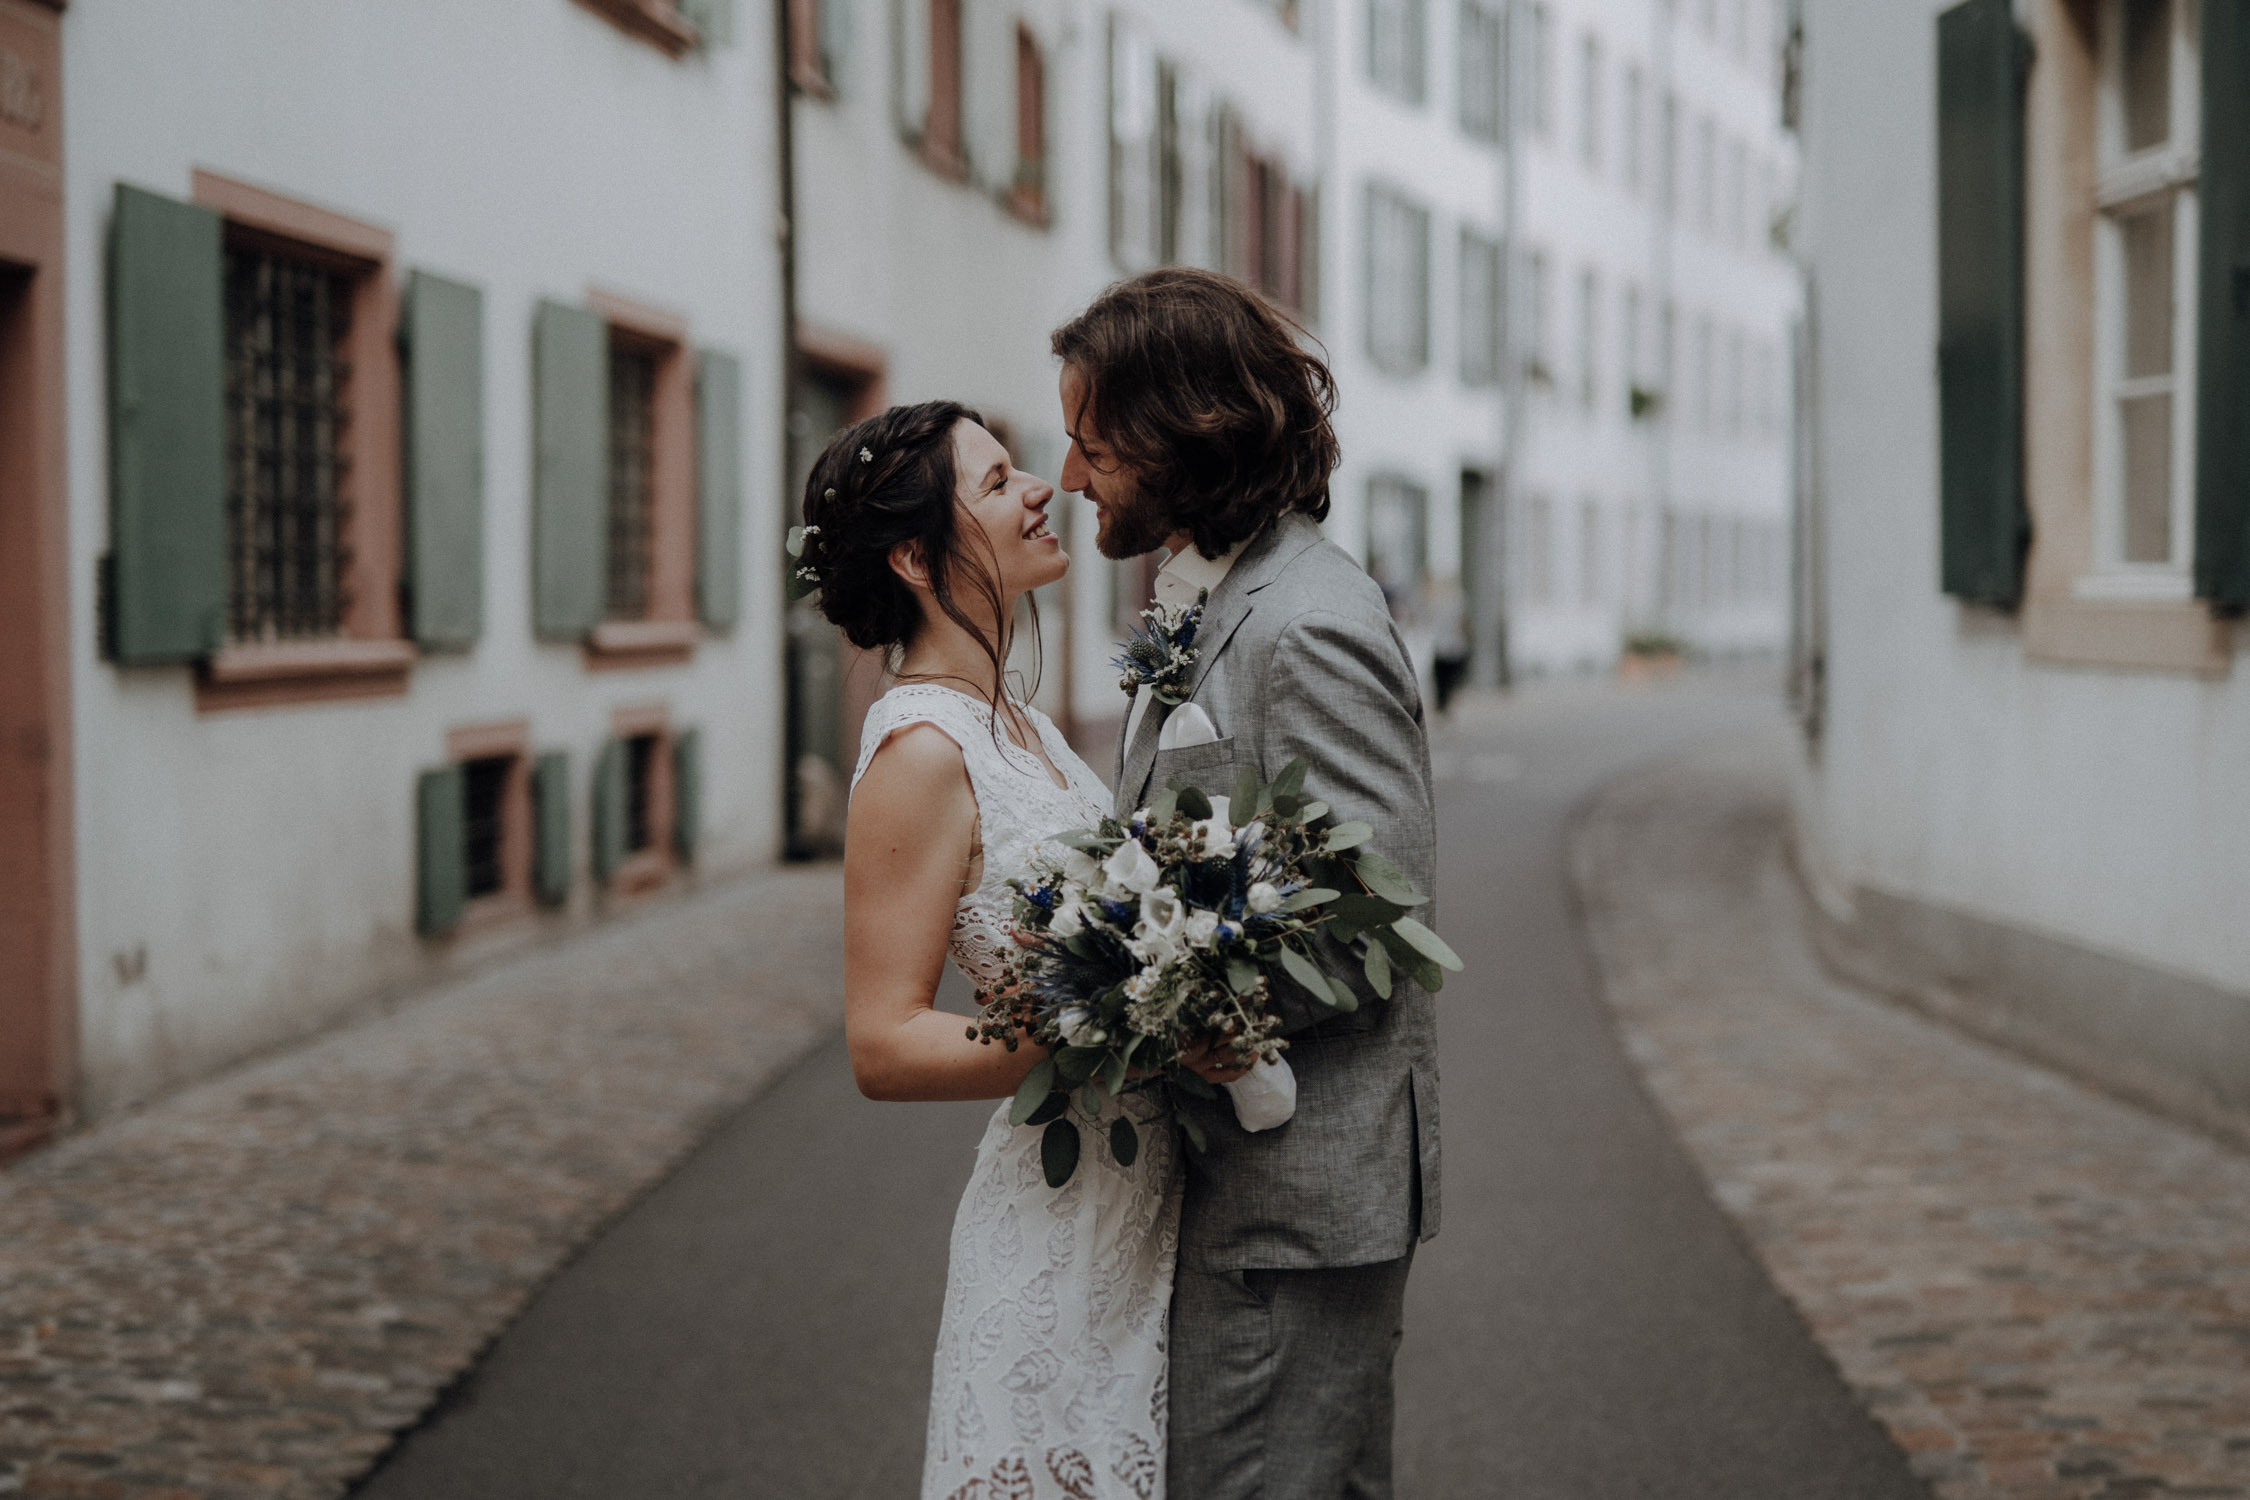 Wedding photographer switzerland basel natural unposed civil wedding old town Basel Minster couple shoot